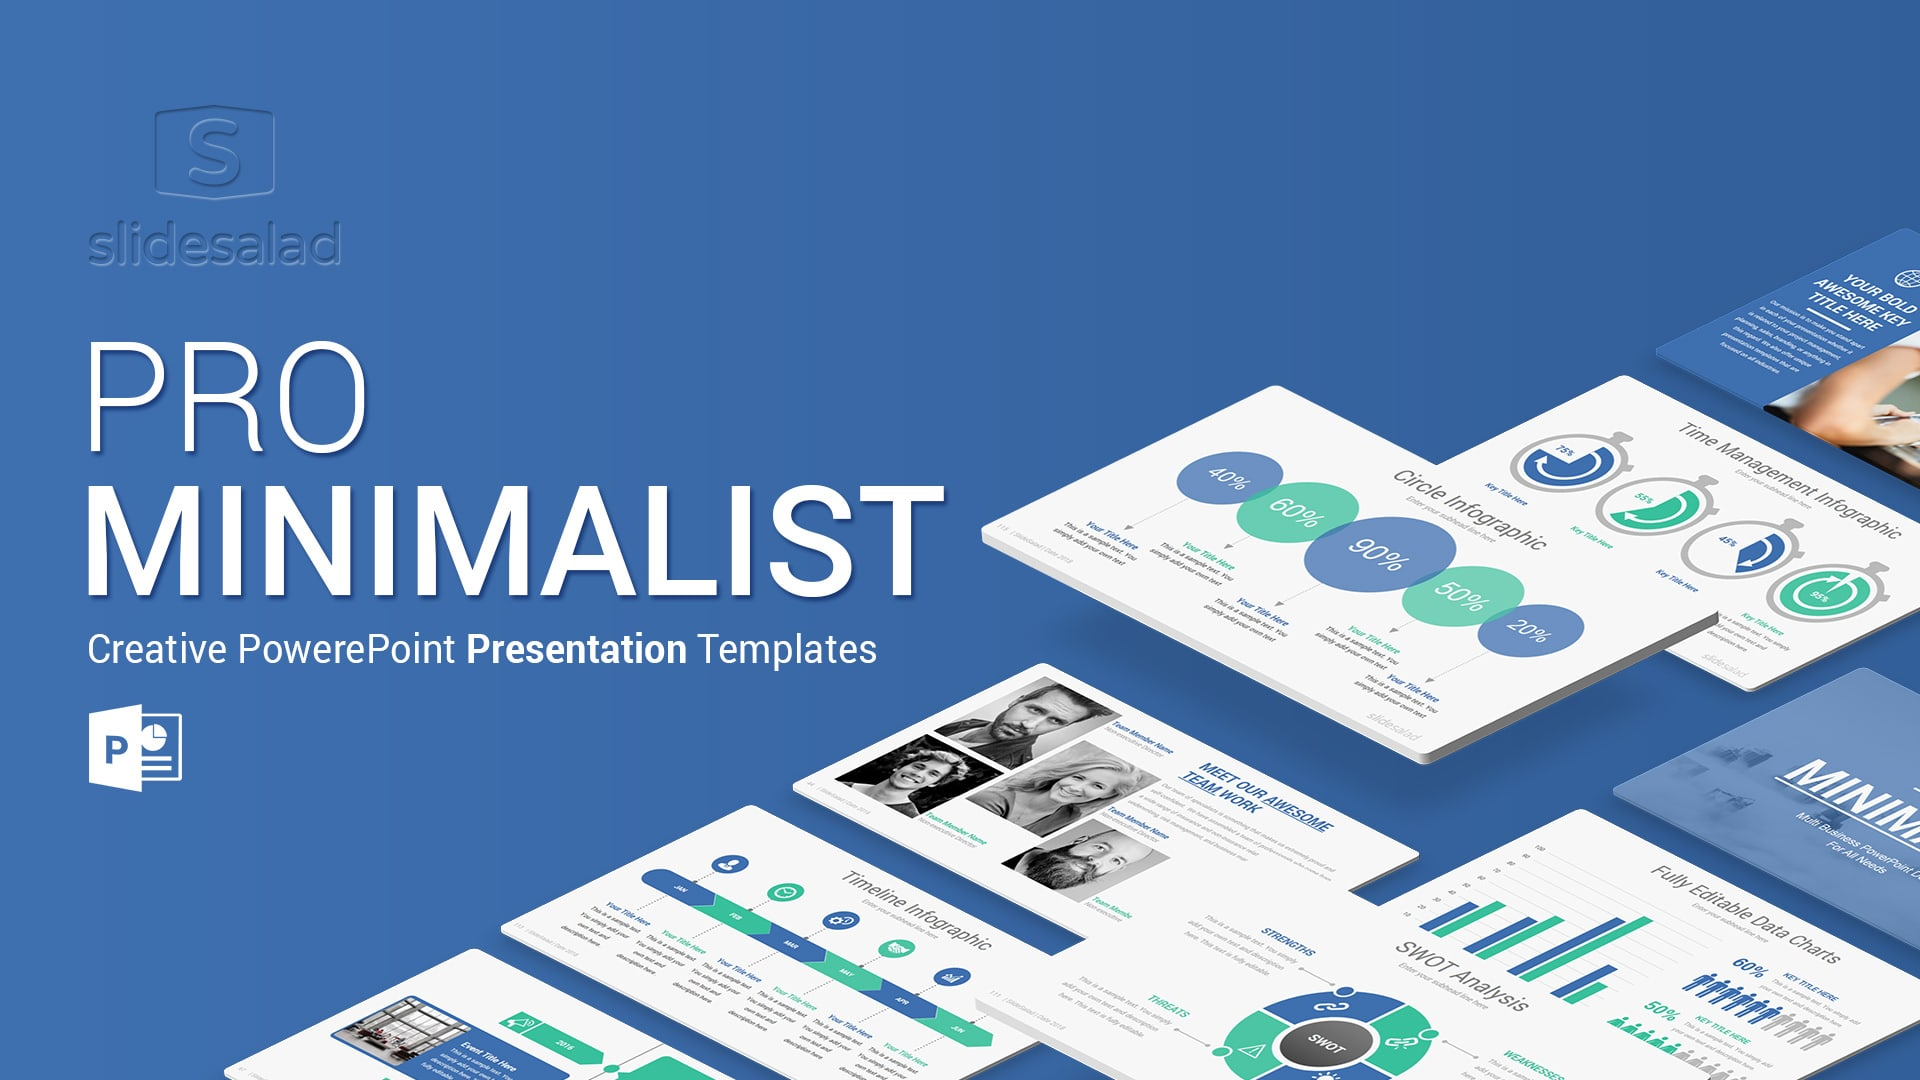 Pro Minimalist PowerPoint Template Designs – Contemporary PowerPoint Templates